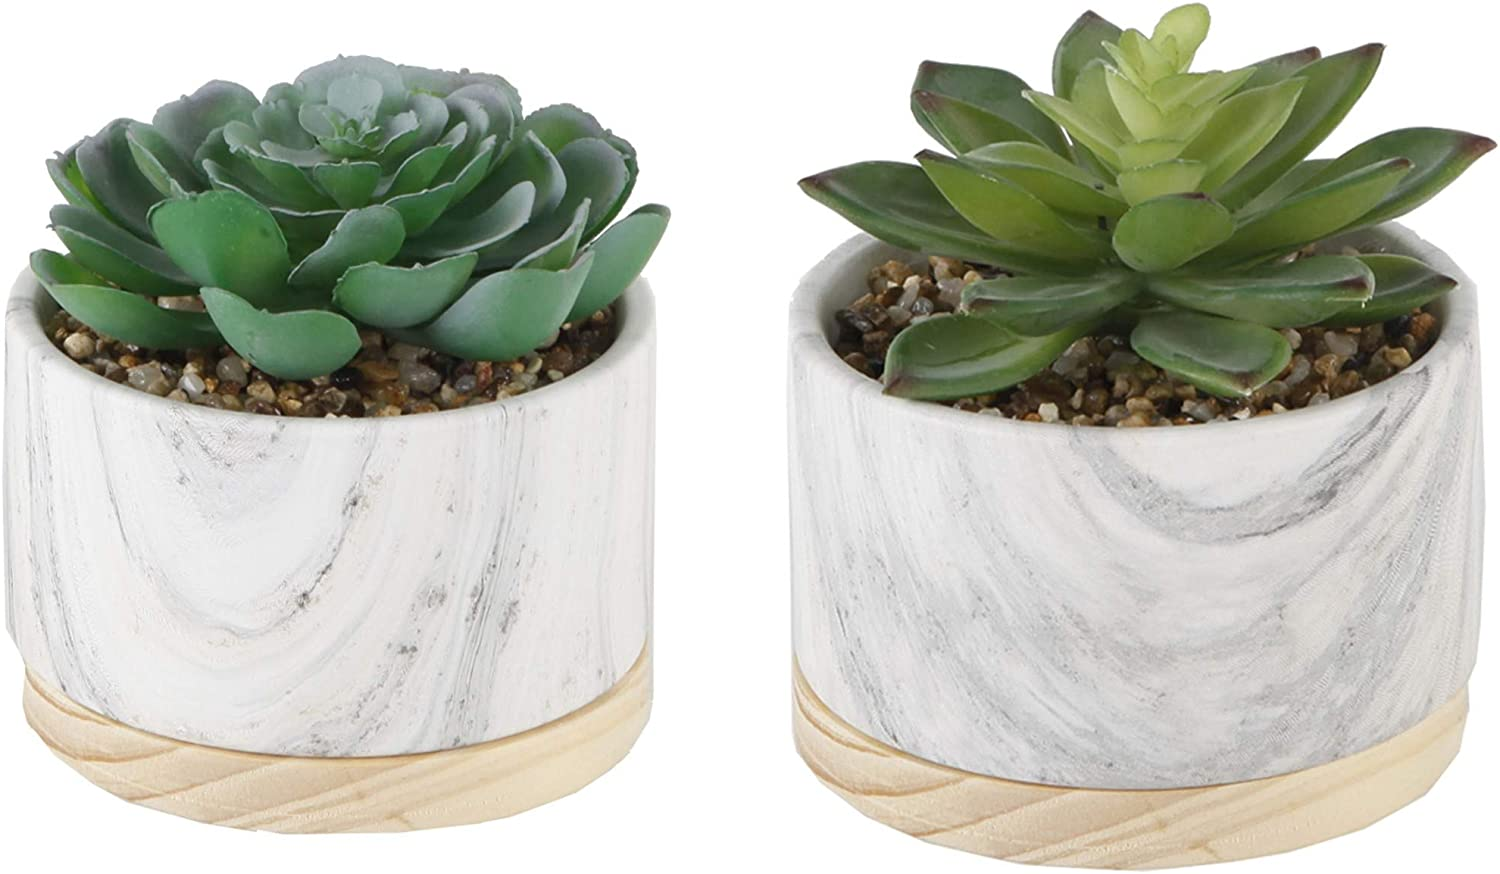 Flora Bunda Artificial Plant Artificial Succulent In 4 Inch Marble Ceramic Planter Wood Base Mid Century Pot Marble Set Of 2 Home Kitchen